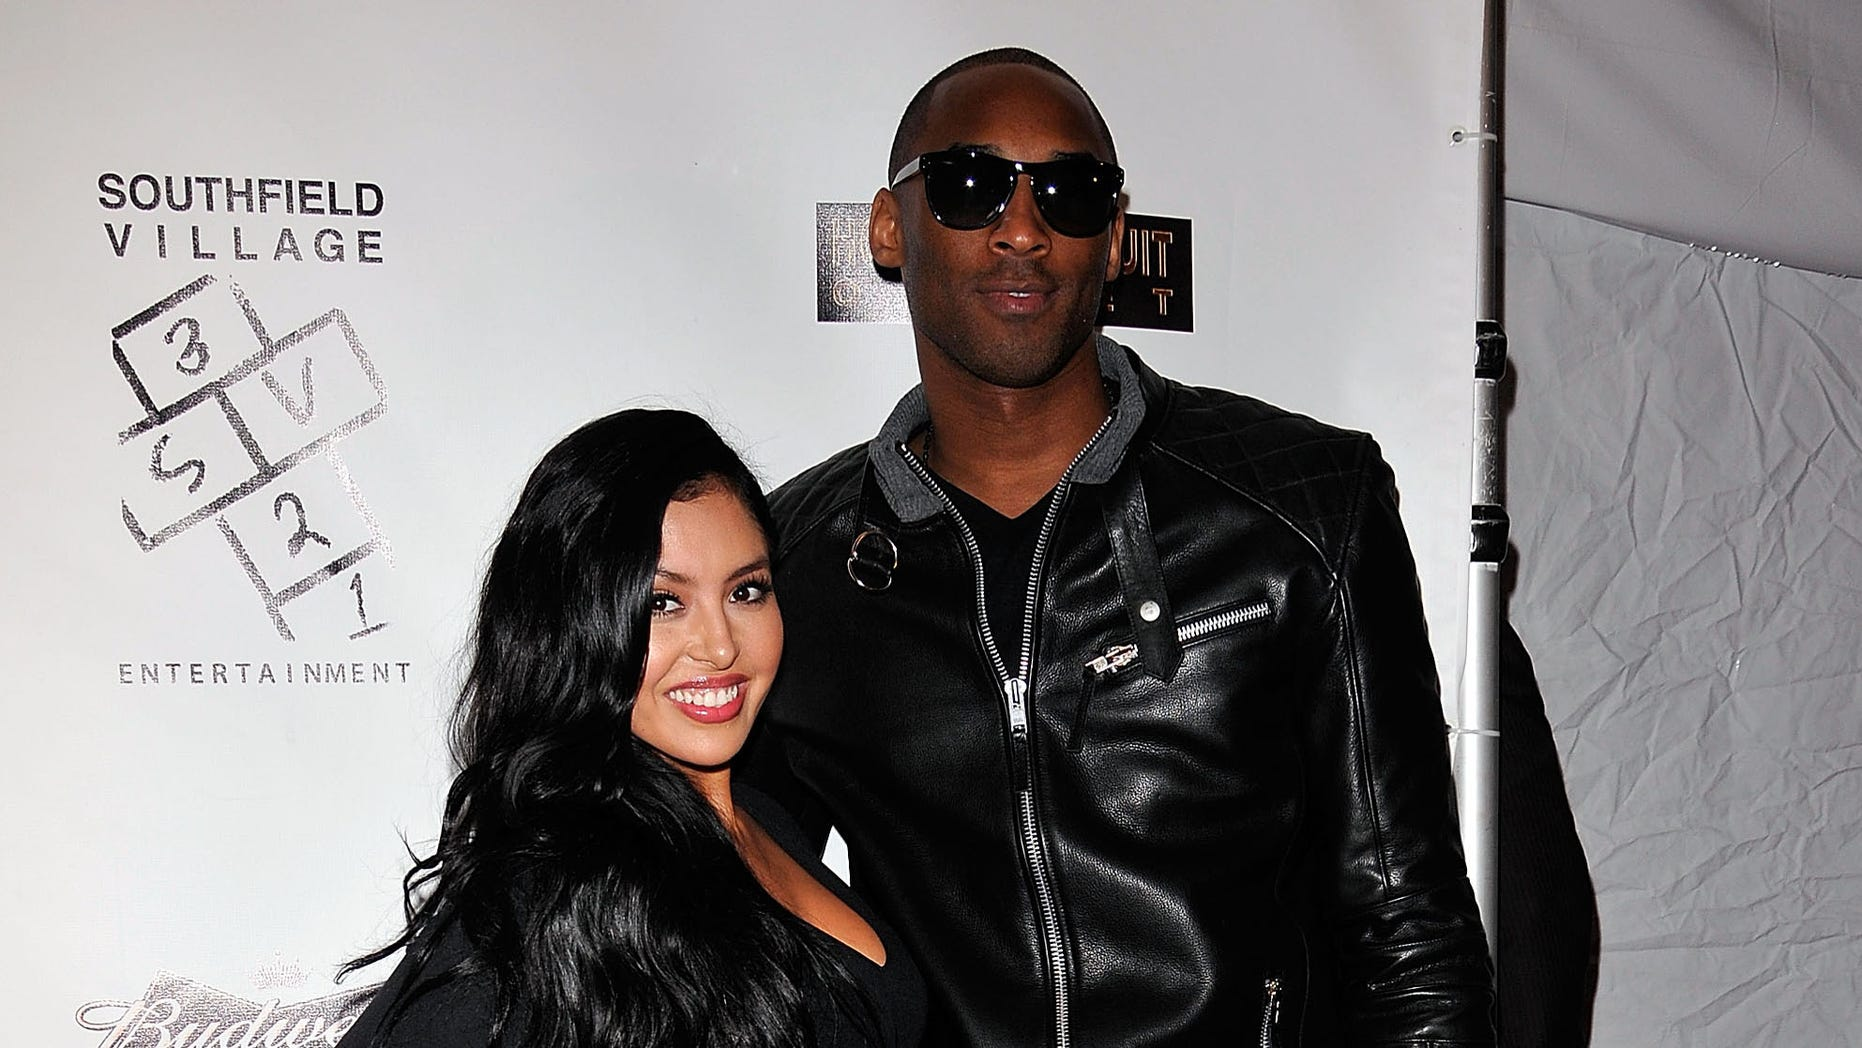 HOLLYWOOD, CA - FEBRUARY 19:  NBA superstar Kobe Bryant (R) arrives with wife Vanessa at the after-party for his hand and footprint ceremony, held at Boulevard3 on February 19, 2011 in Hollywood, California.  (Photo by Michael Tullberg/Getty Images)